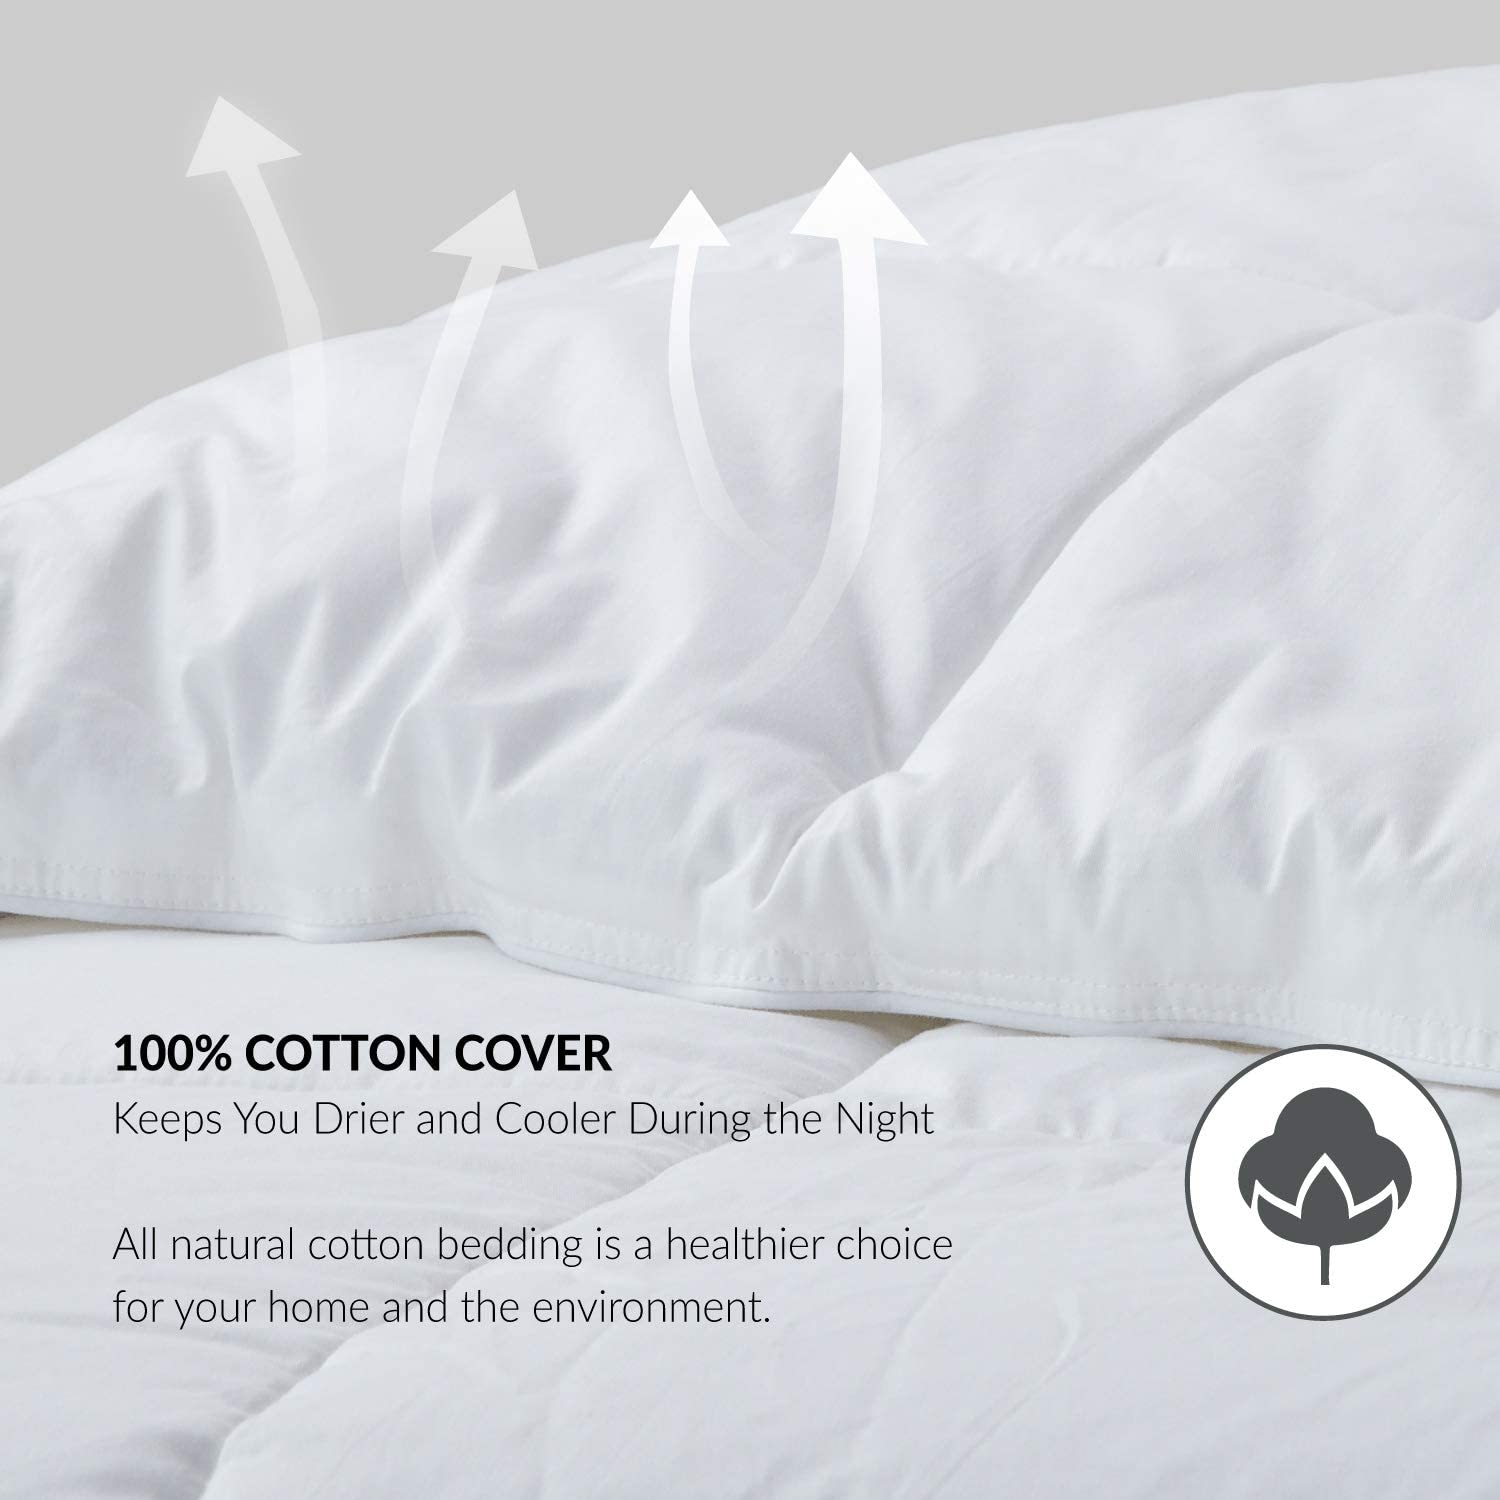 Bedsure 100/% Cotton Shell All-Season Down Alternative Comforter Queen with Corner Tabs 60OZ Lightweight/&Fluffy Plush Microfiber Fill in Whole Piece Machine Washable with No Clumping Duvet Insert